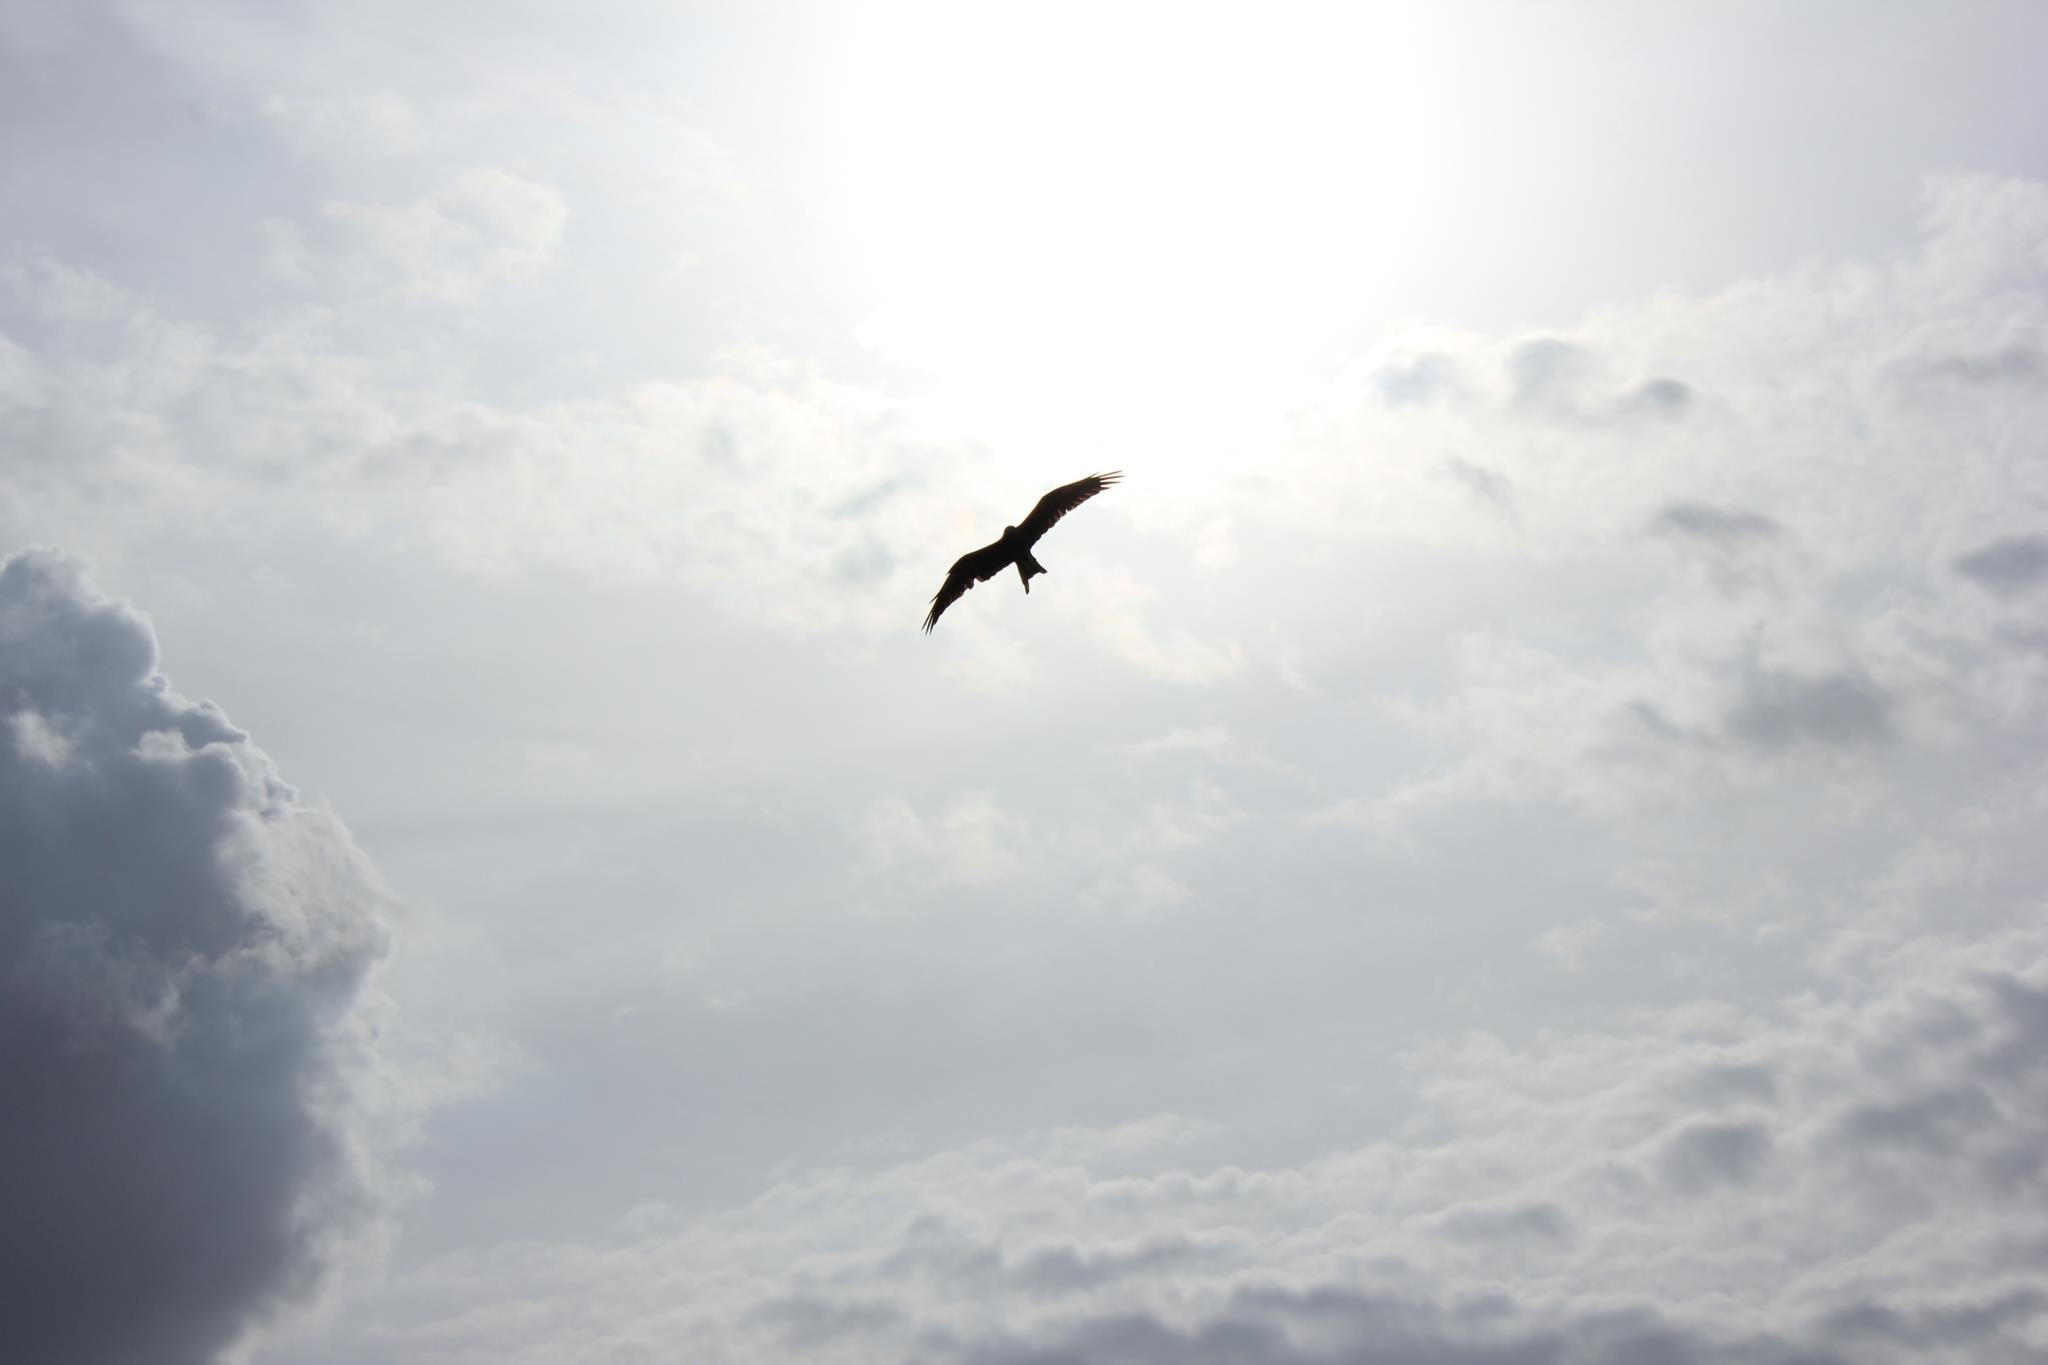 silhouette of bird flying